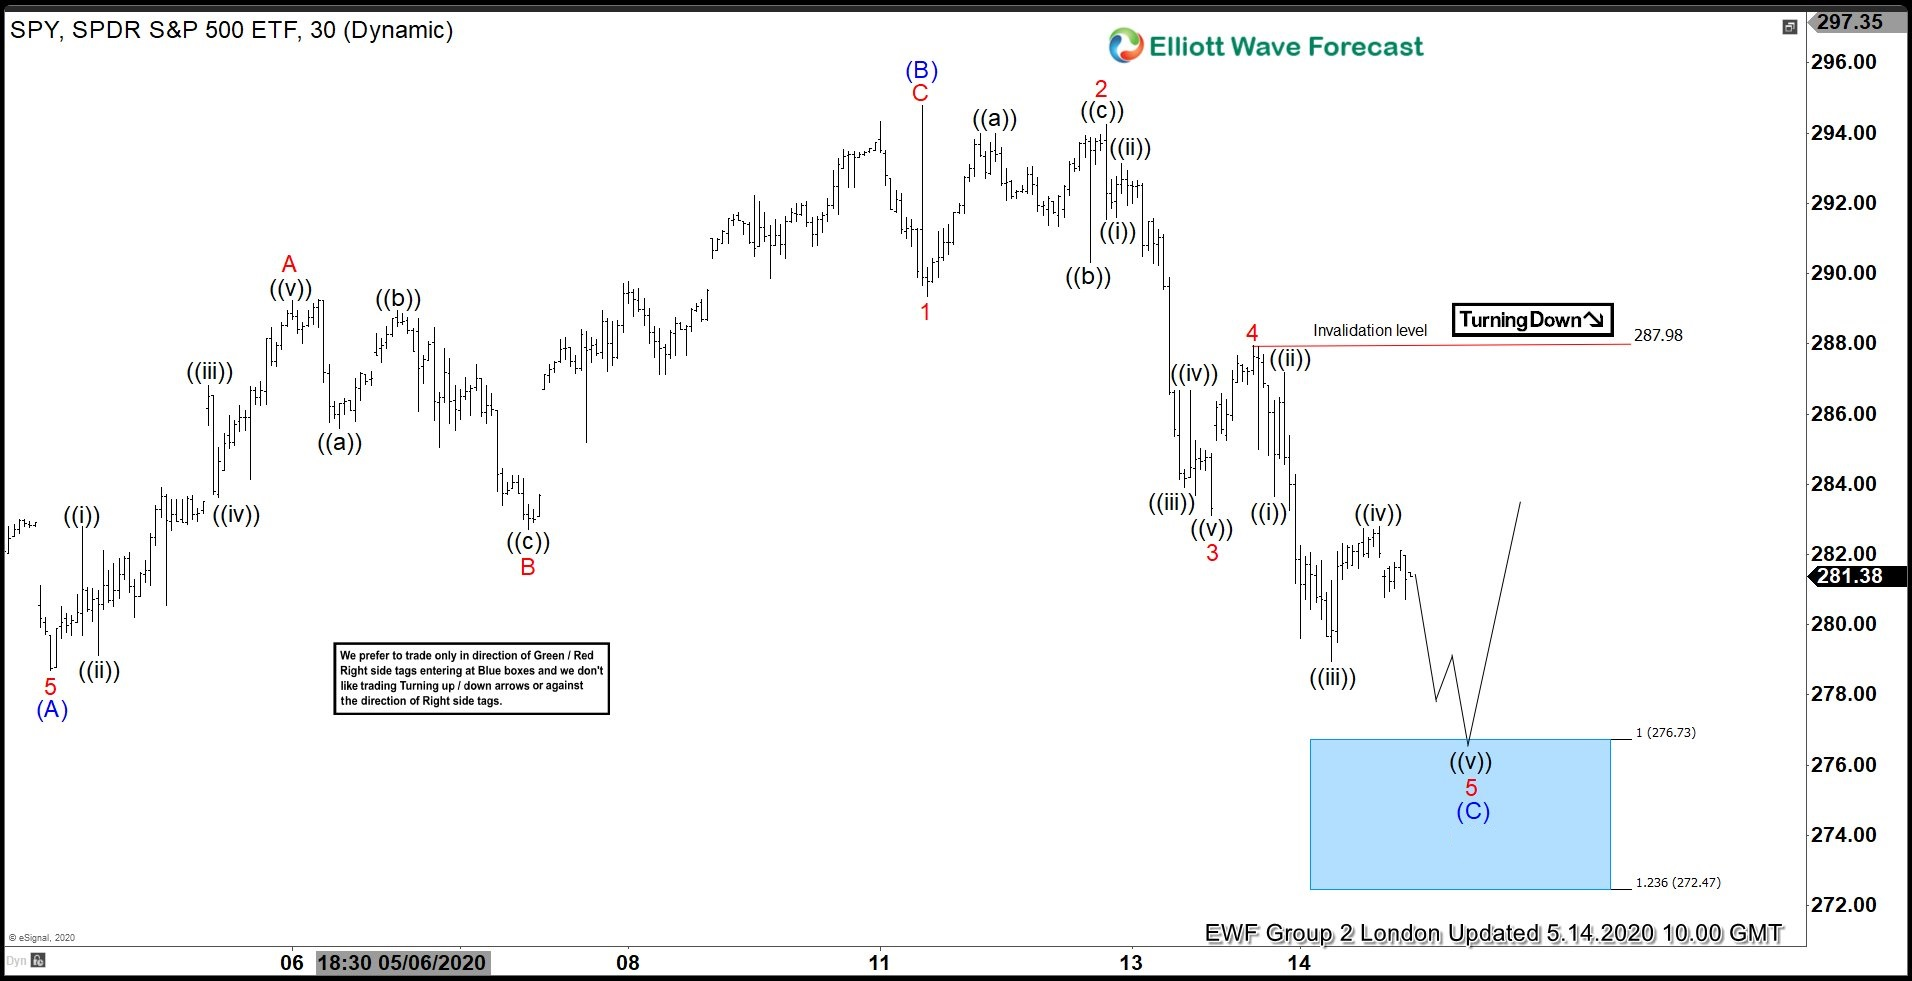 SPY 14 May 1 Hour Elliott Wave Update